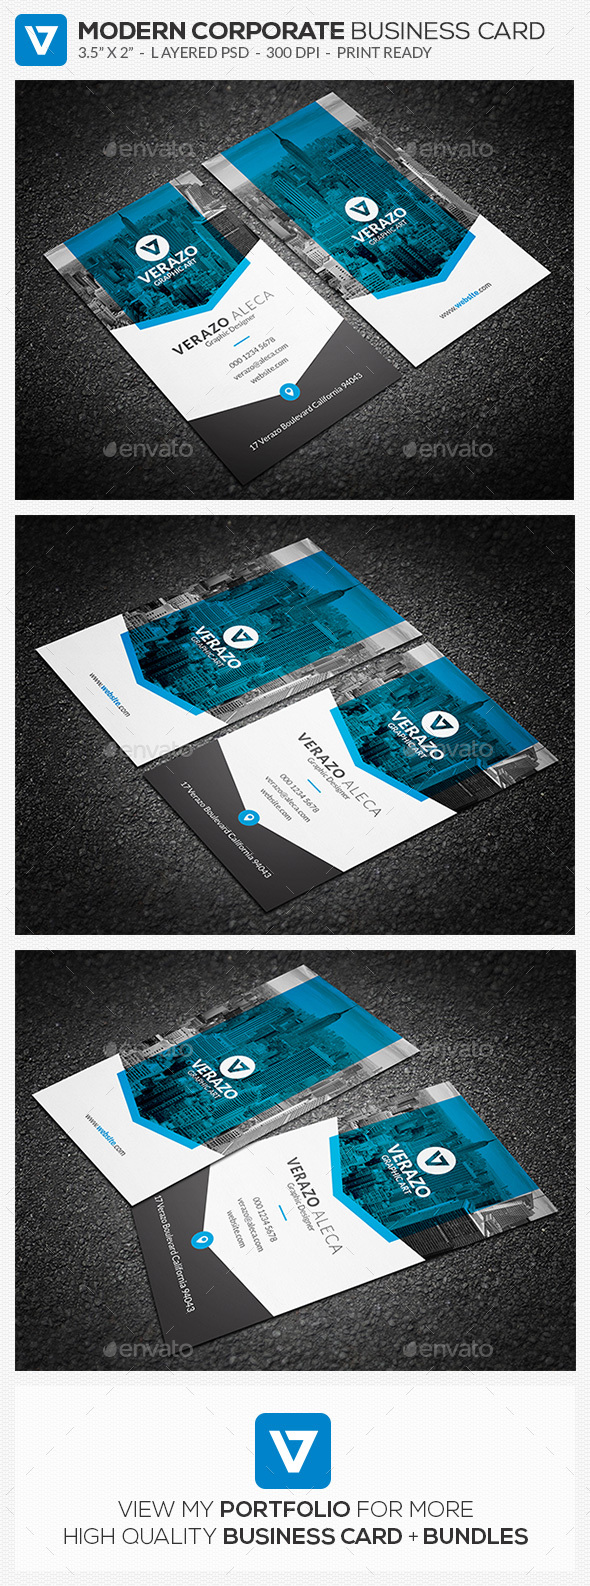 Clean modern vertical business card template by verazo graphicriver clean modern vertical business card template corporate business cards reheart Image collections